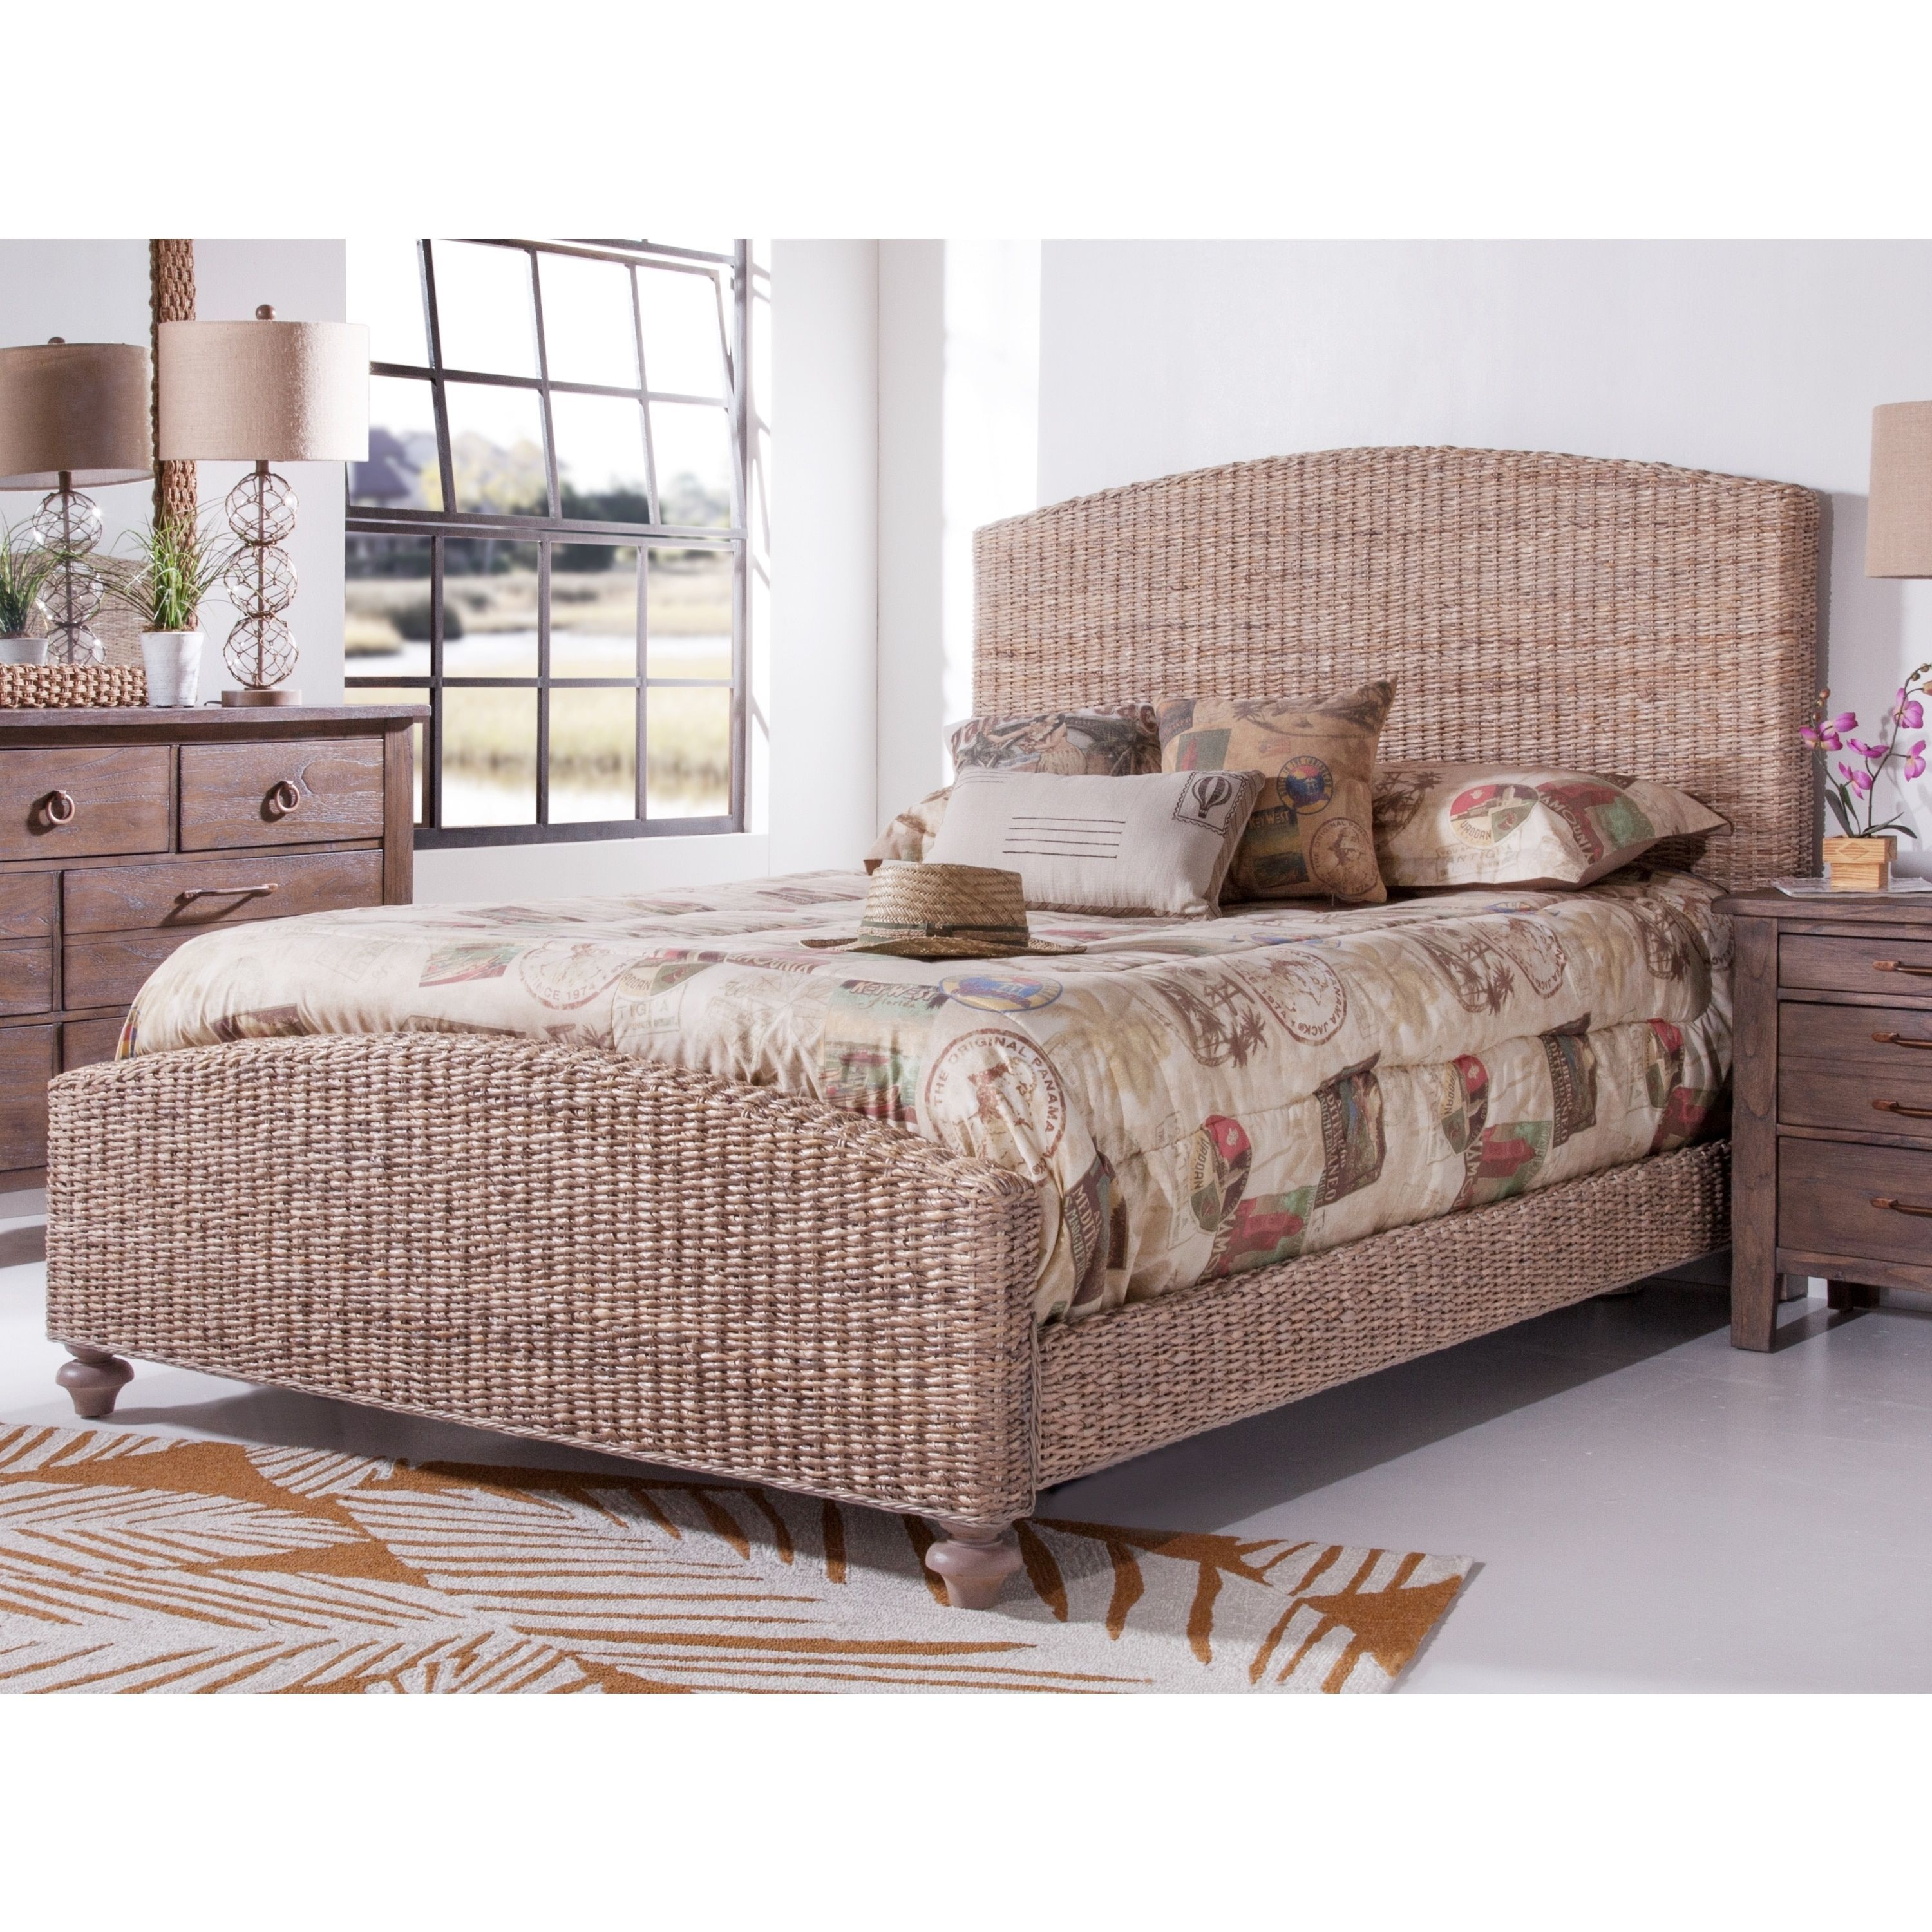 Loft bed plans for full size mattress  Driftwood Woven Bed by Panama Jack Driftwood Queen Woven Bed Grey